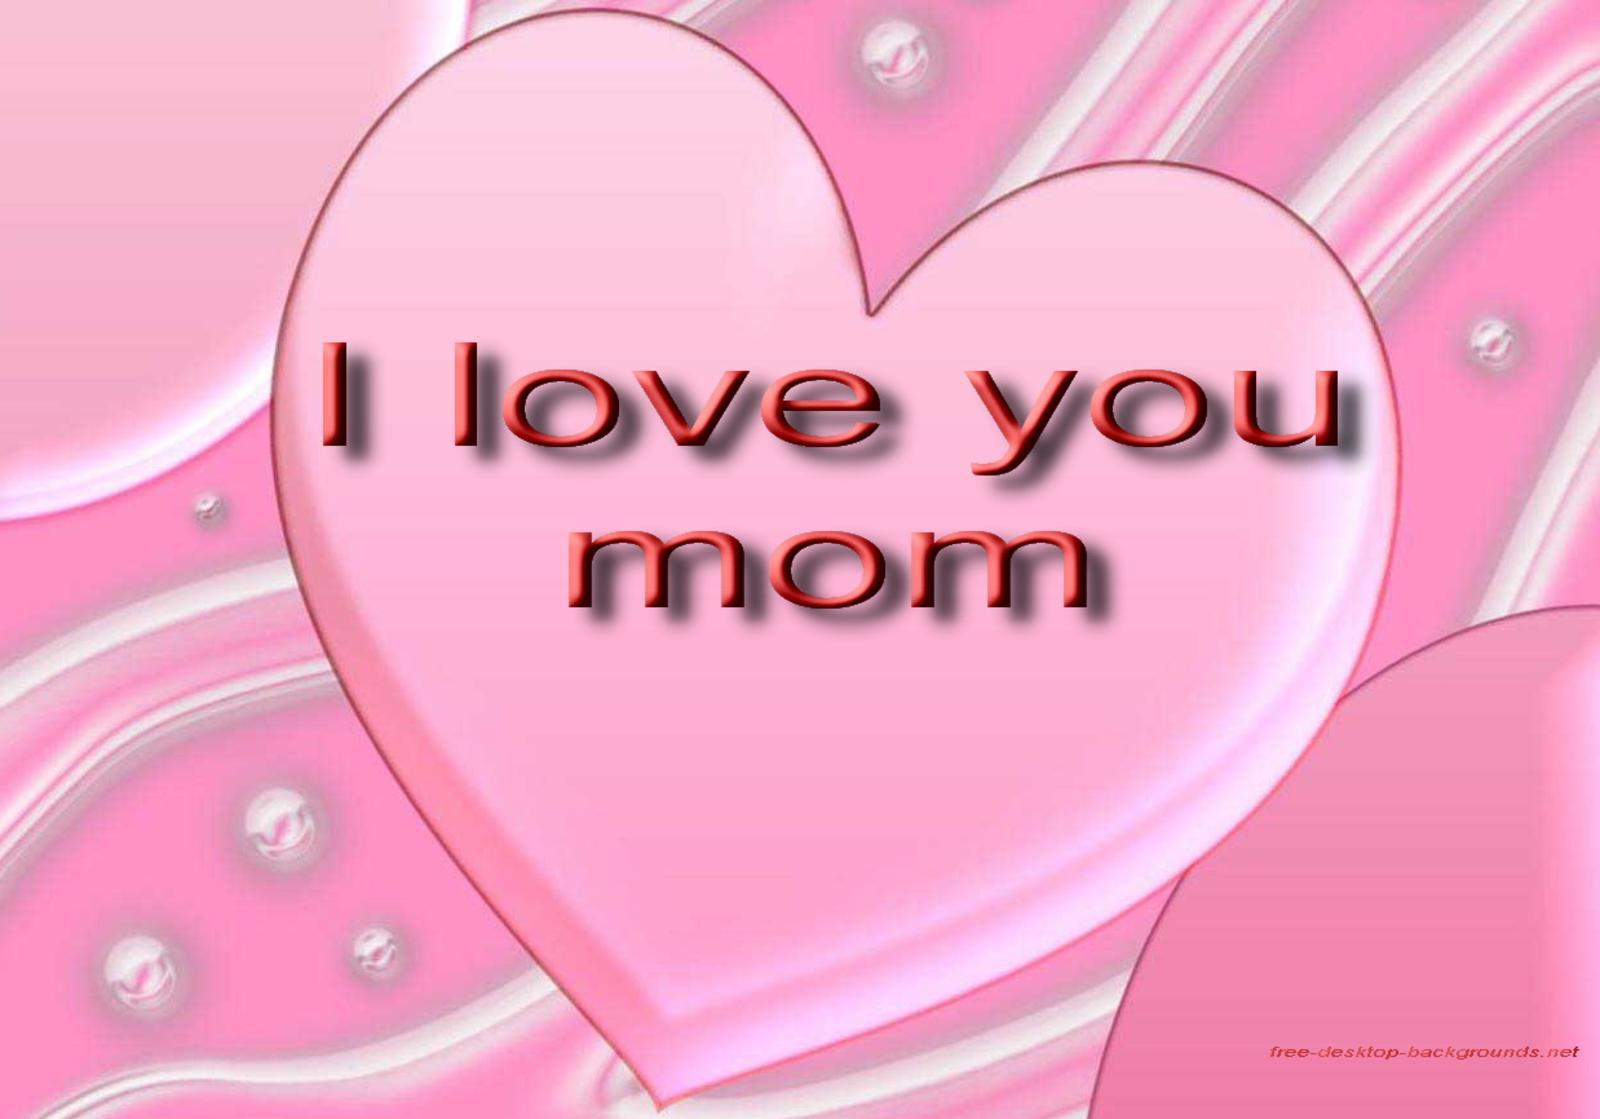 Wallpaper I Love You Daddy : I Love You Dad Wallpaper - WallpaperSafari